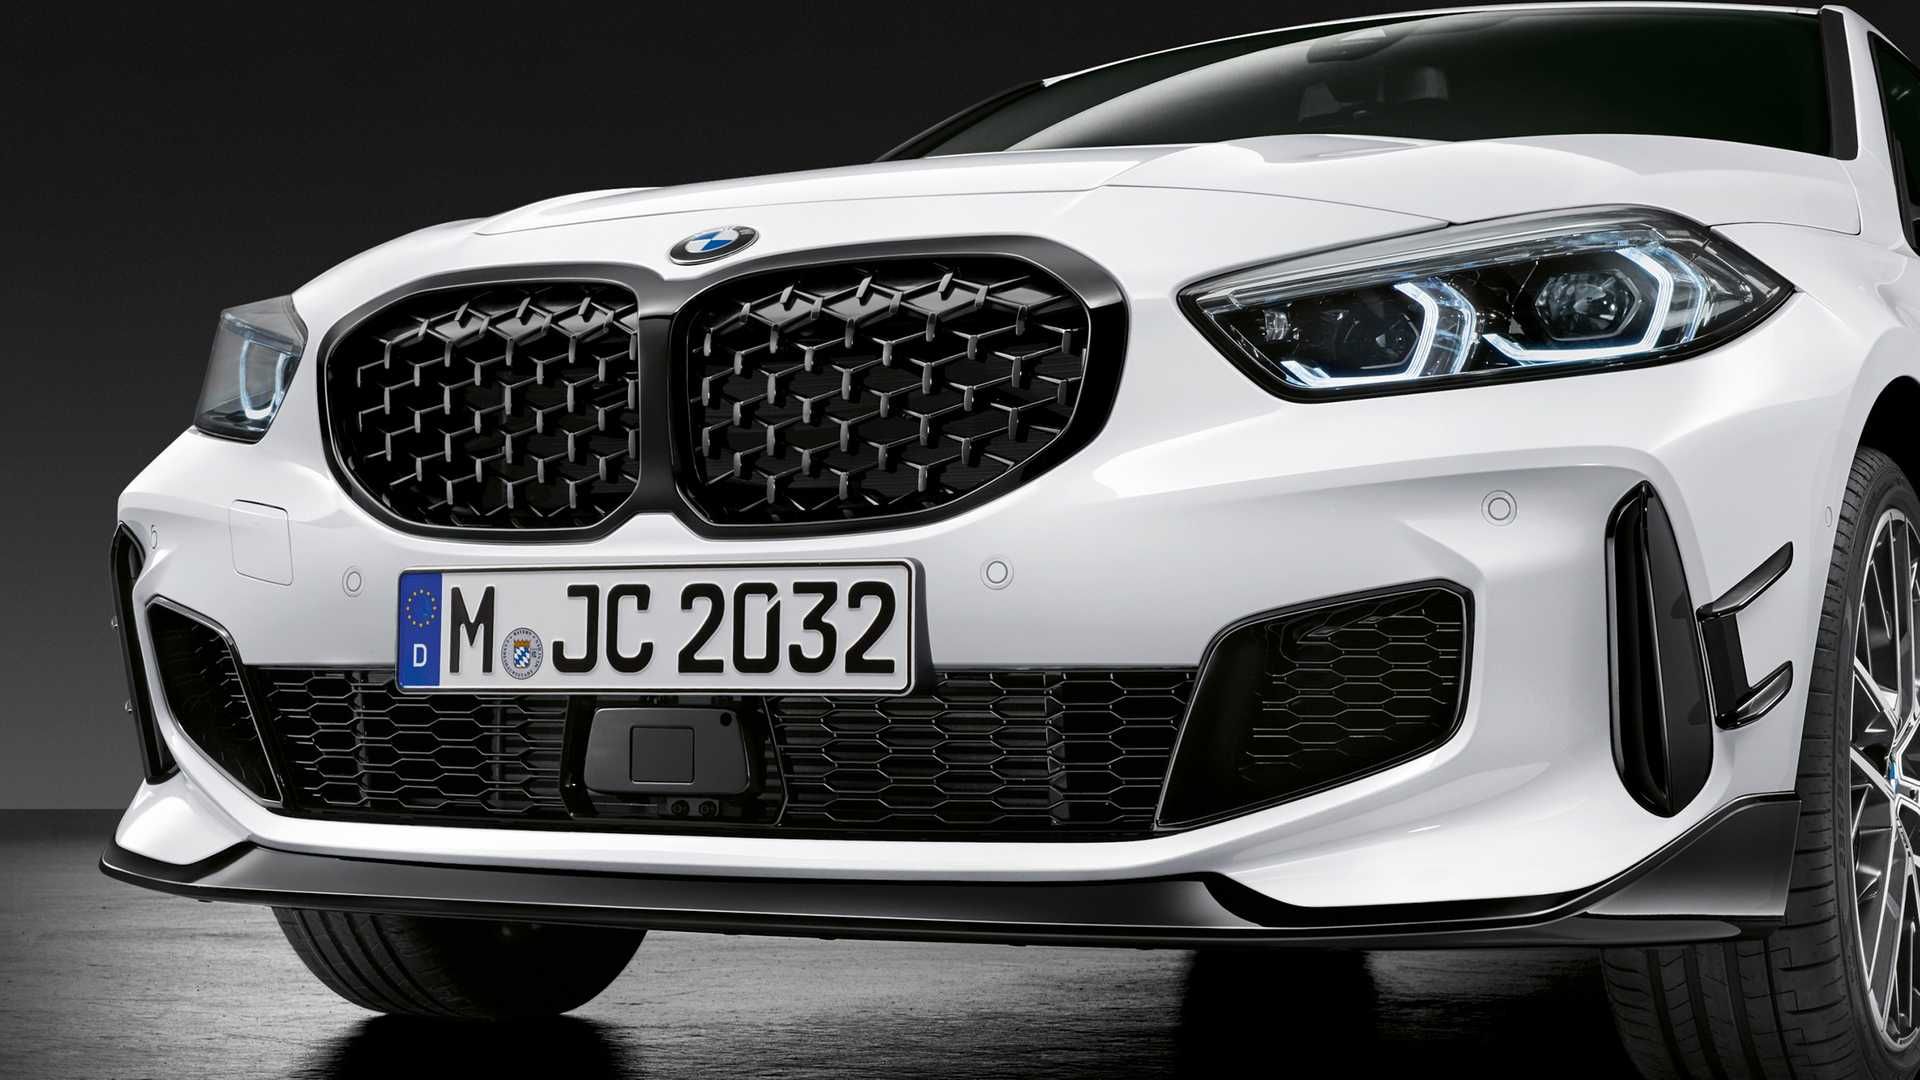 2020 Bmw M135i Xdrive Gets Sporty Look With M Performance Parts